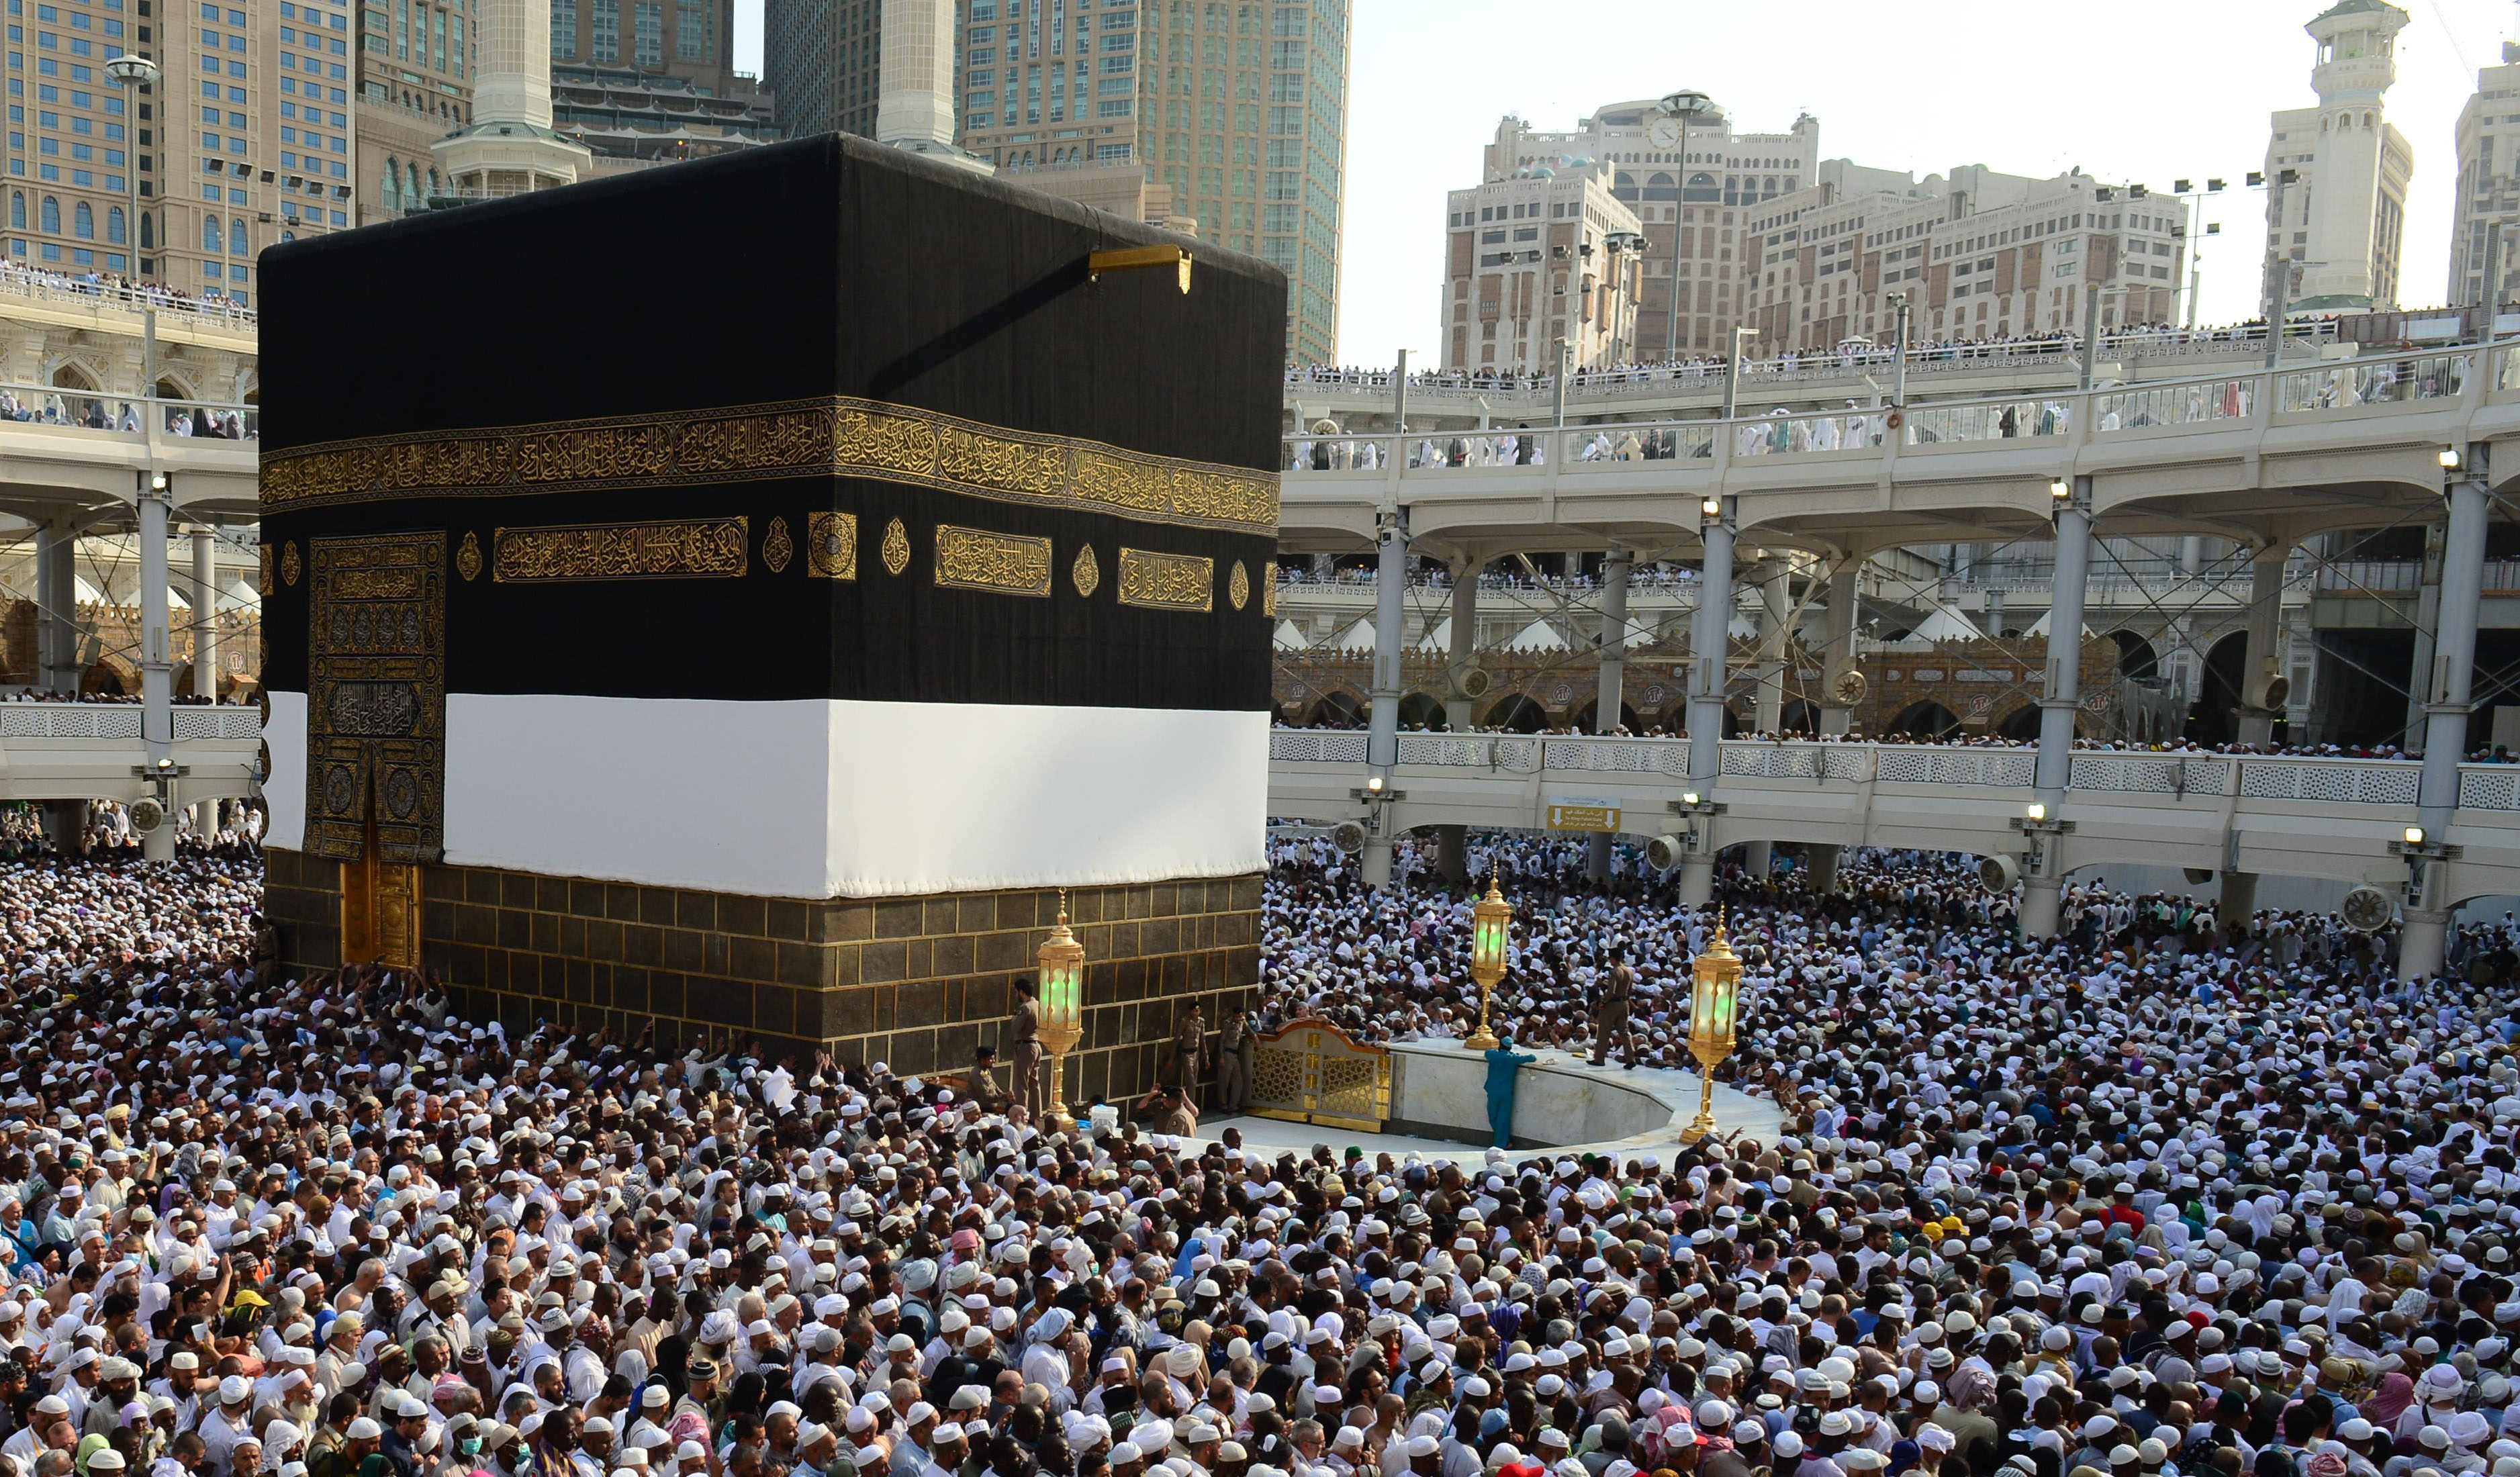 Muslim pilgrims from all around the world circle counterclockwise Islam's holiest shrine, the Kaaba, ahead of upcoming Eid Al-Adha (Feast of Sacrifice) at Masjid al-Haram (the Grand Mosque) in the Muslim holy city of Mecca, Saudi Arabia on September 30, 2014.